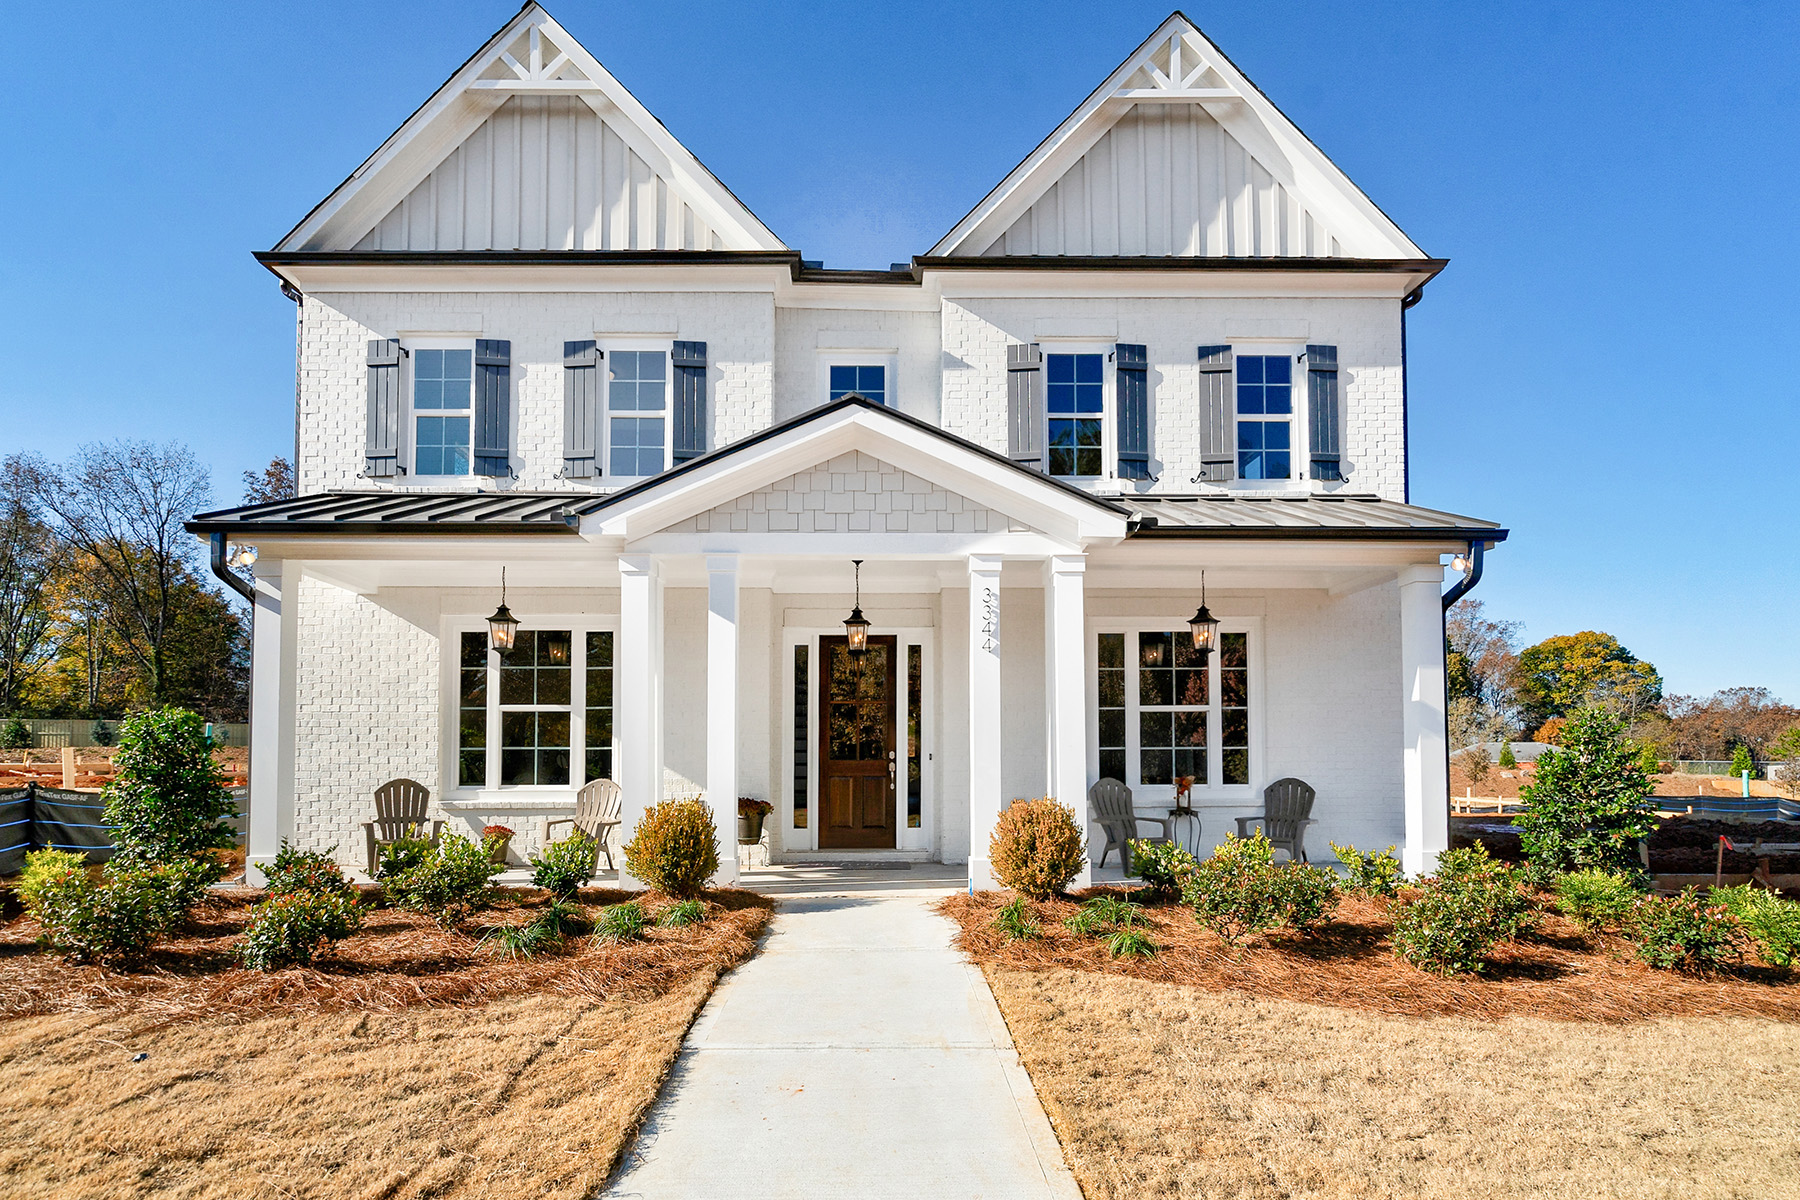 Single Family Homes for Active at New Construction Craftsman in Smyrna 3328 Old Concord Road Smyrna, Georgia 30082 United States